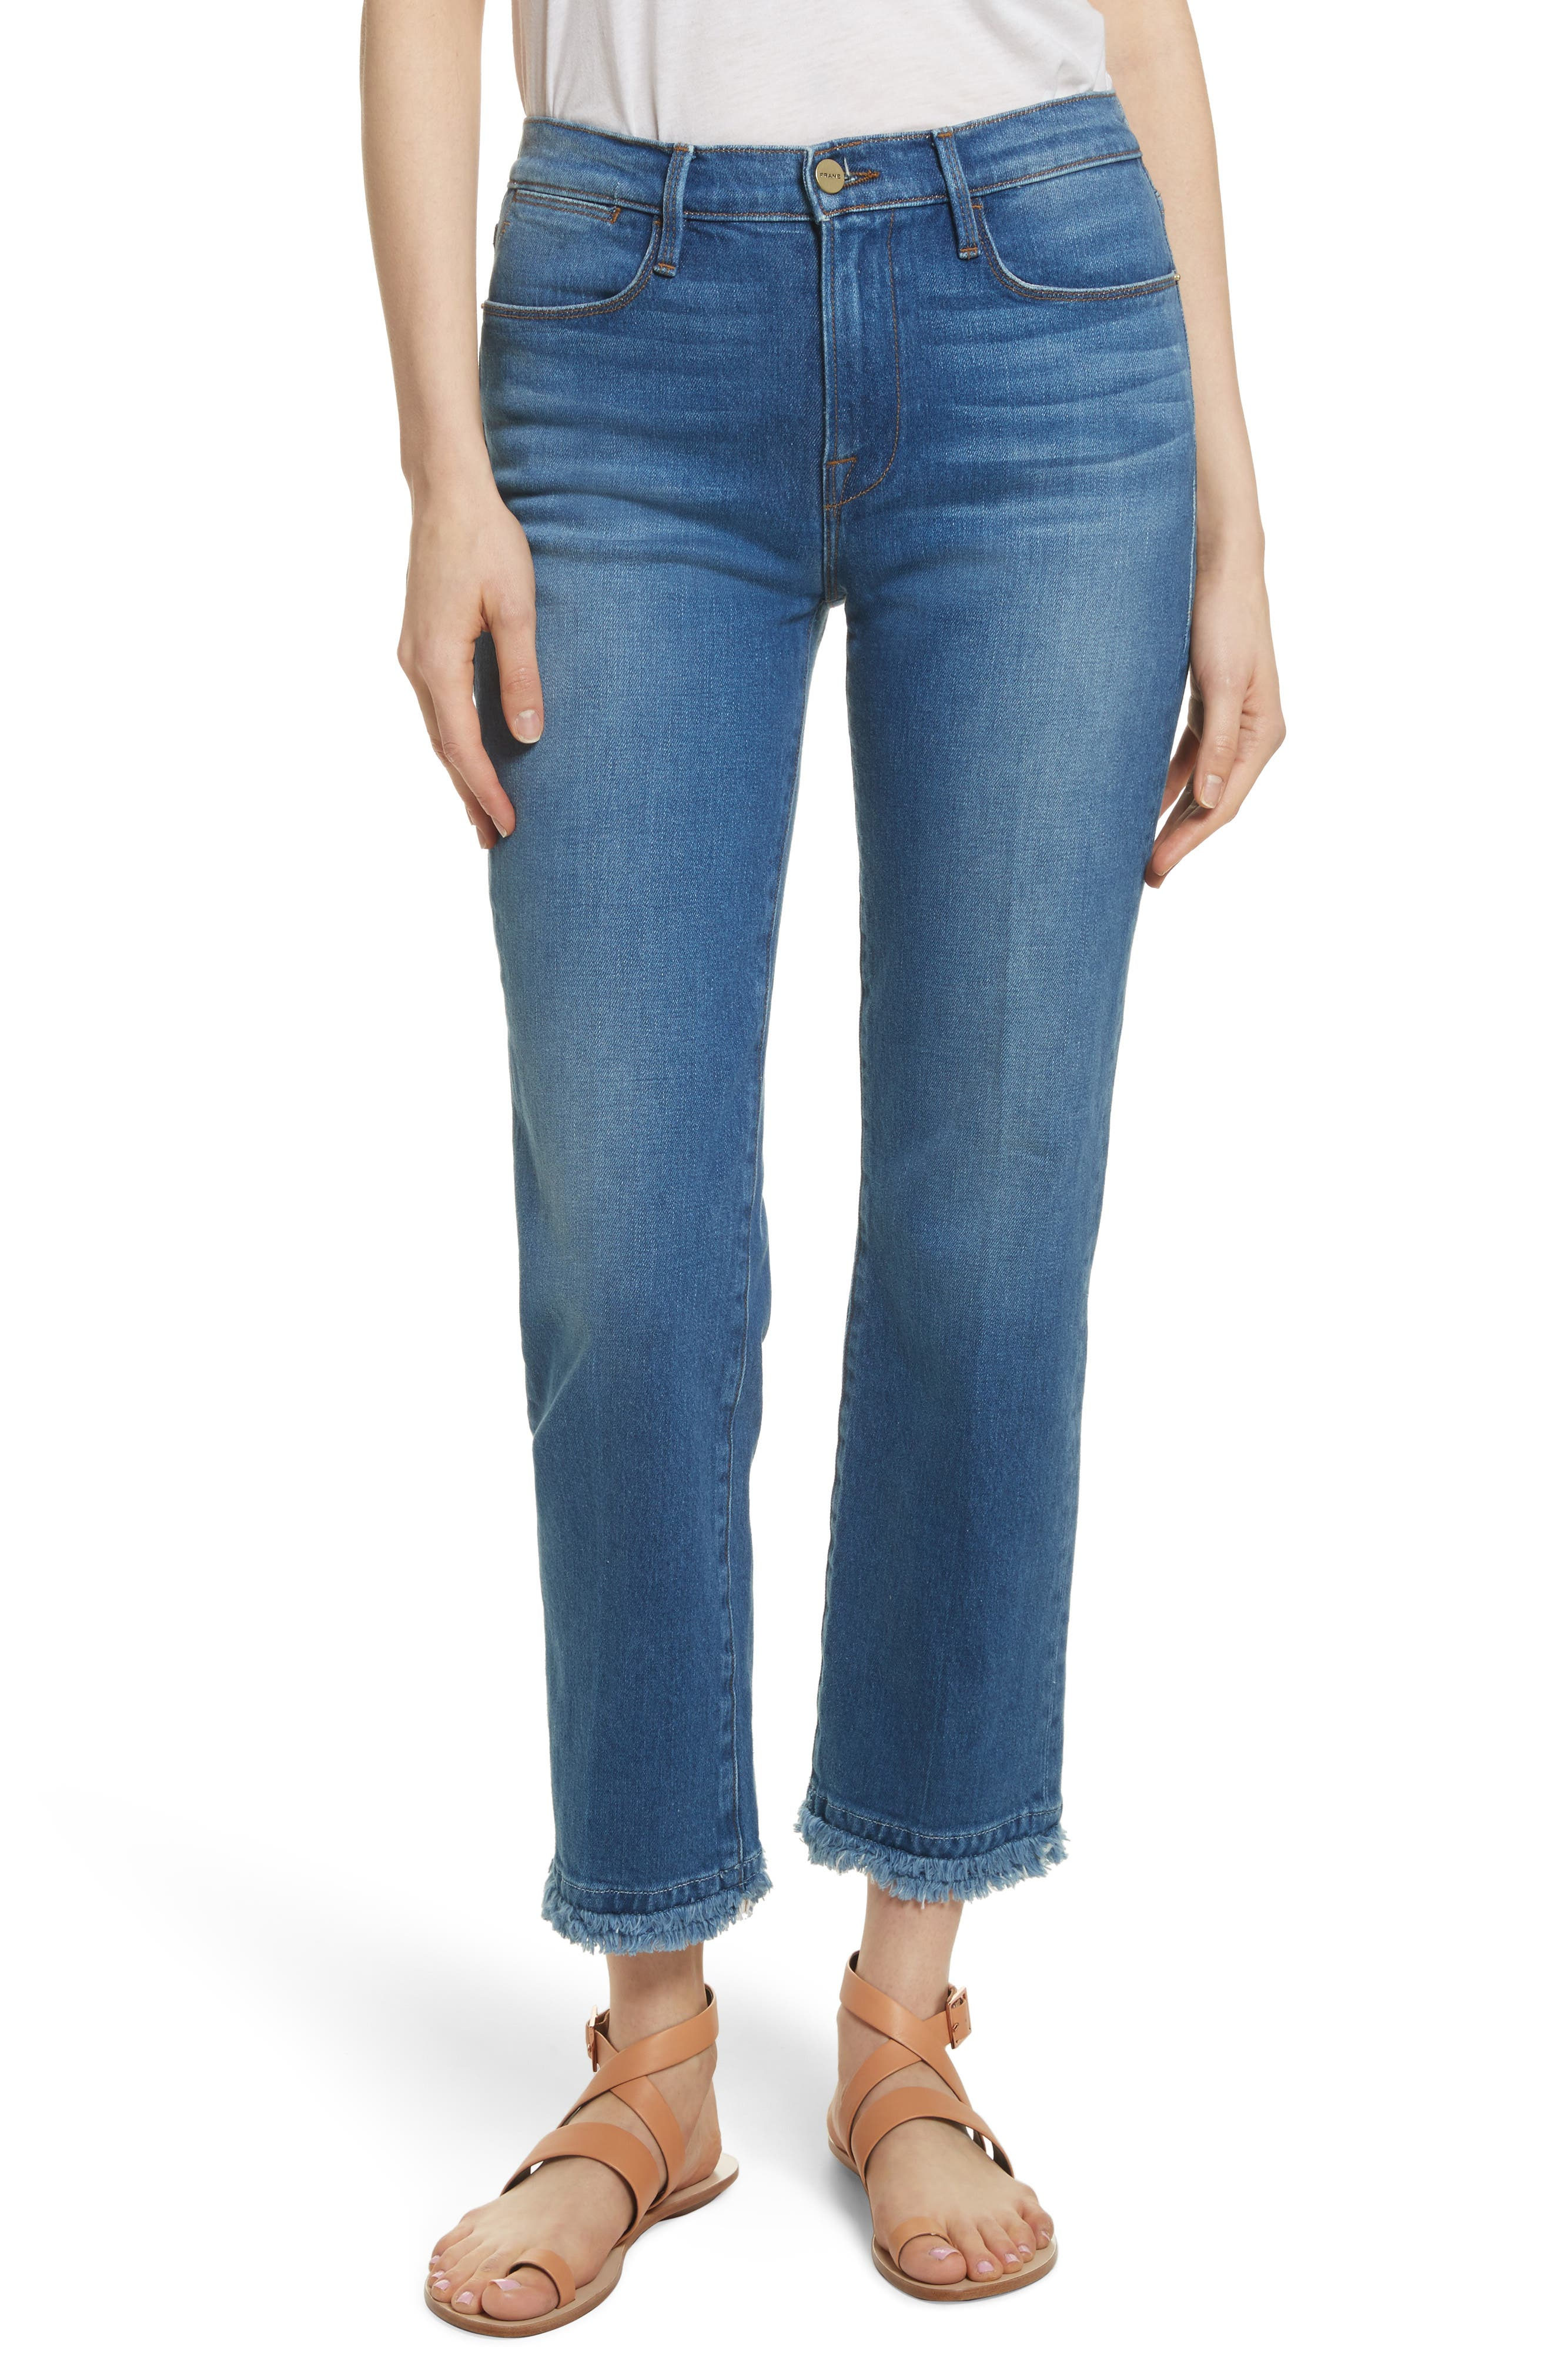 Le High Double Raw Edge High Waist Jeans,                         Main,                         color, Whitway